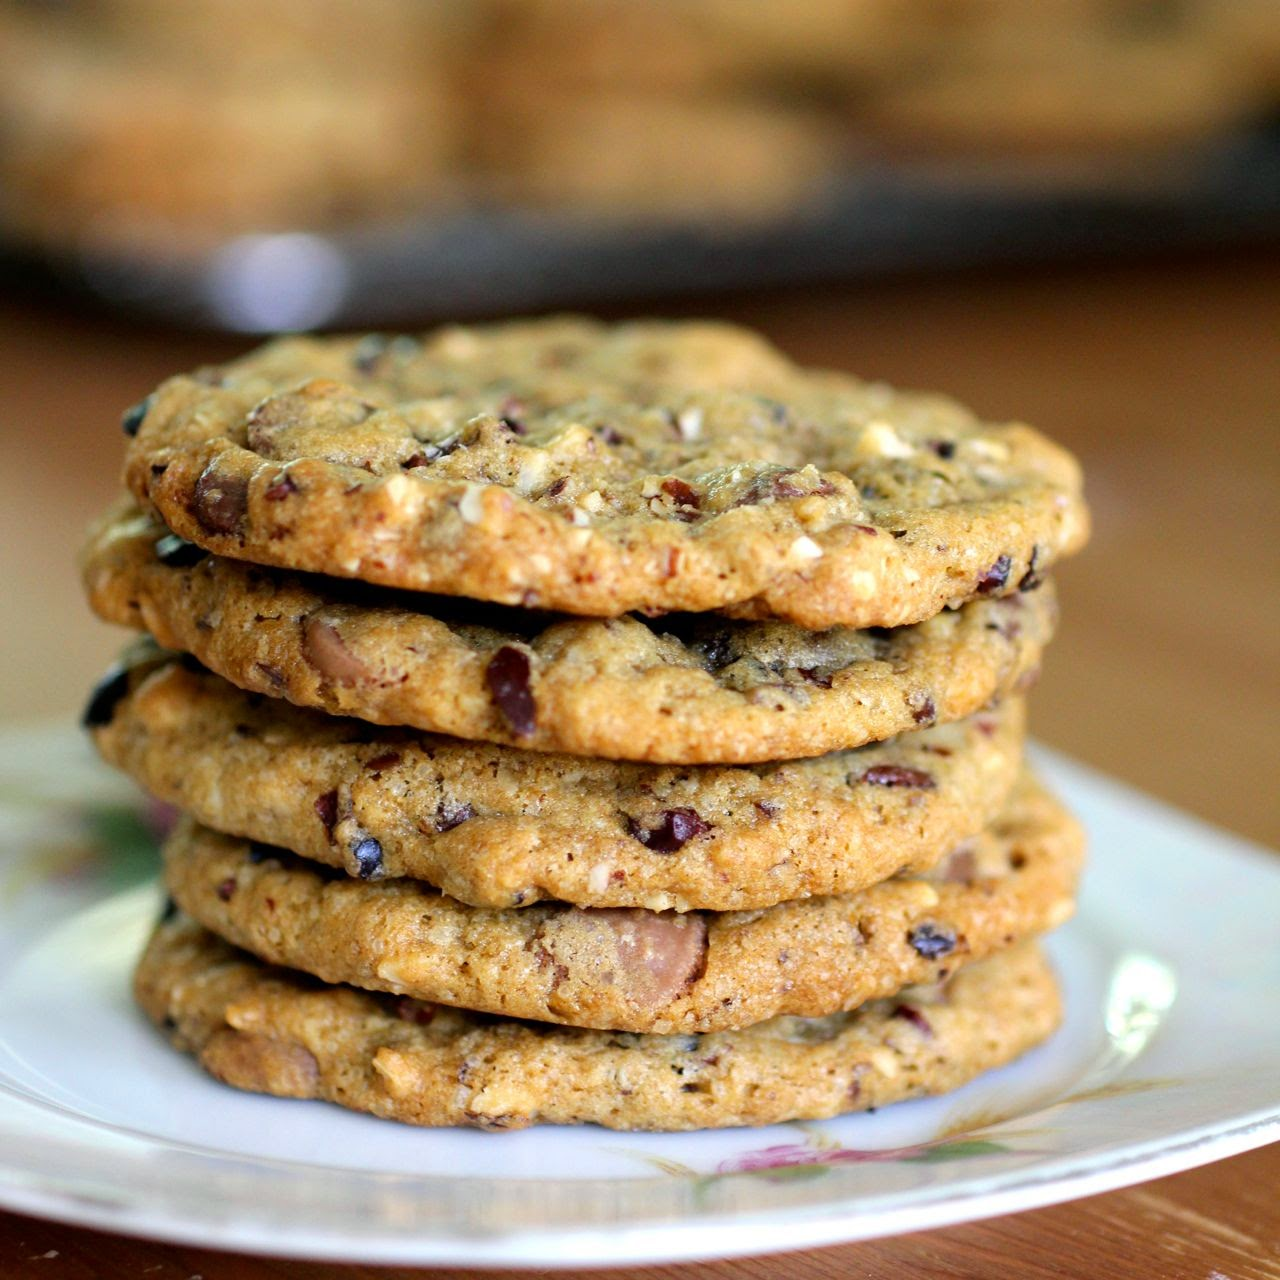 smoky%2Bchoc%2Bchip%2Bcookies 9 Vegan choc chip cookies with smoked almonds and cacao nibs